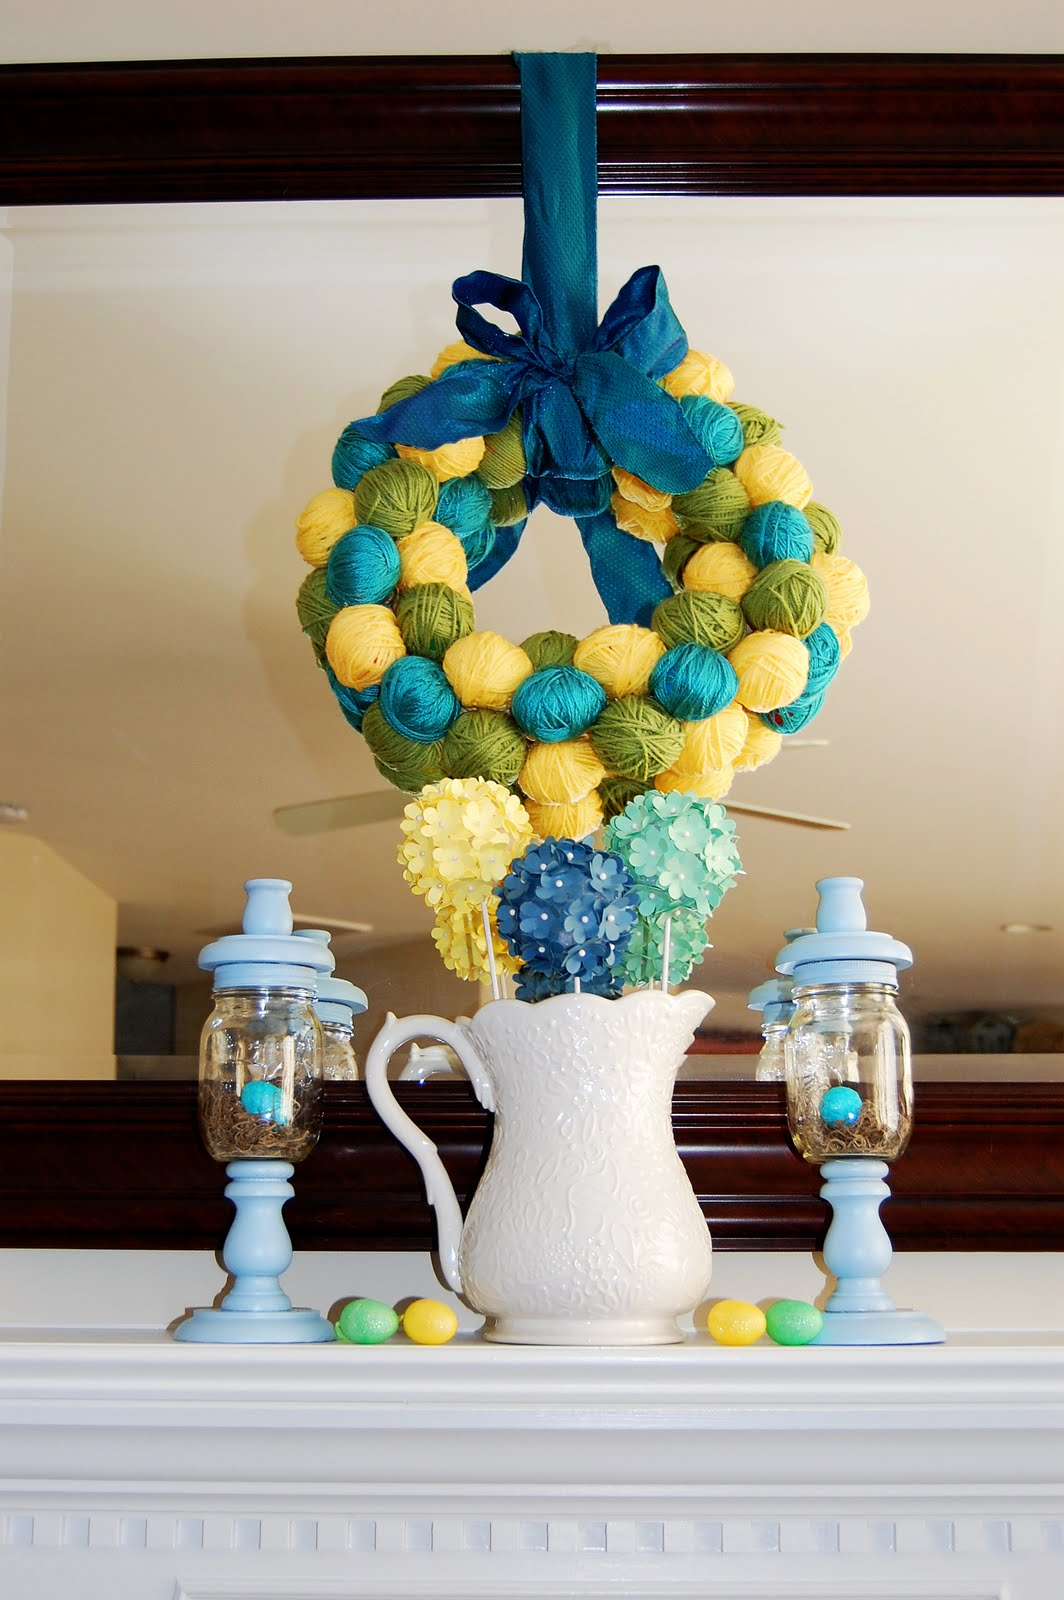 41 fashionable ideas to decorate your home for easter for Home decor centerpieces